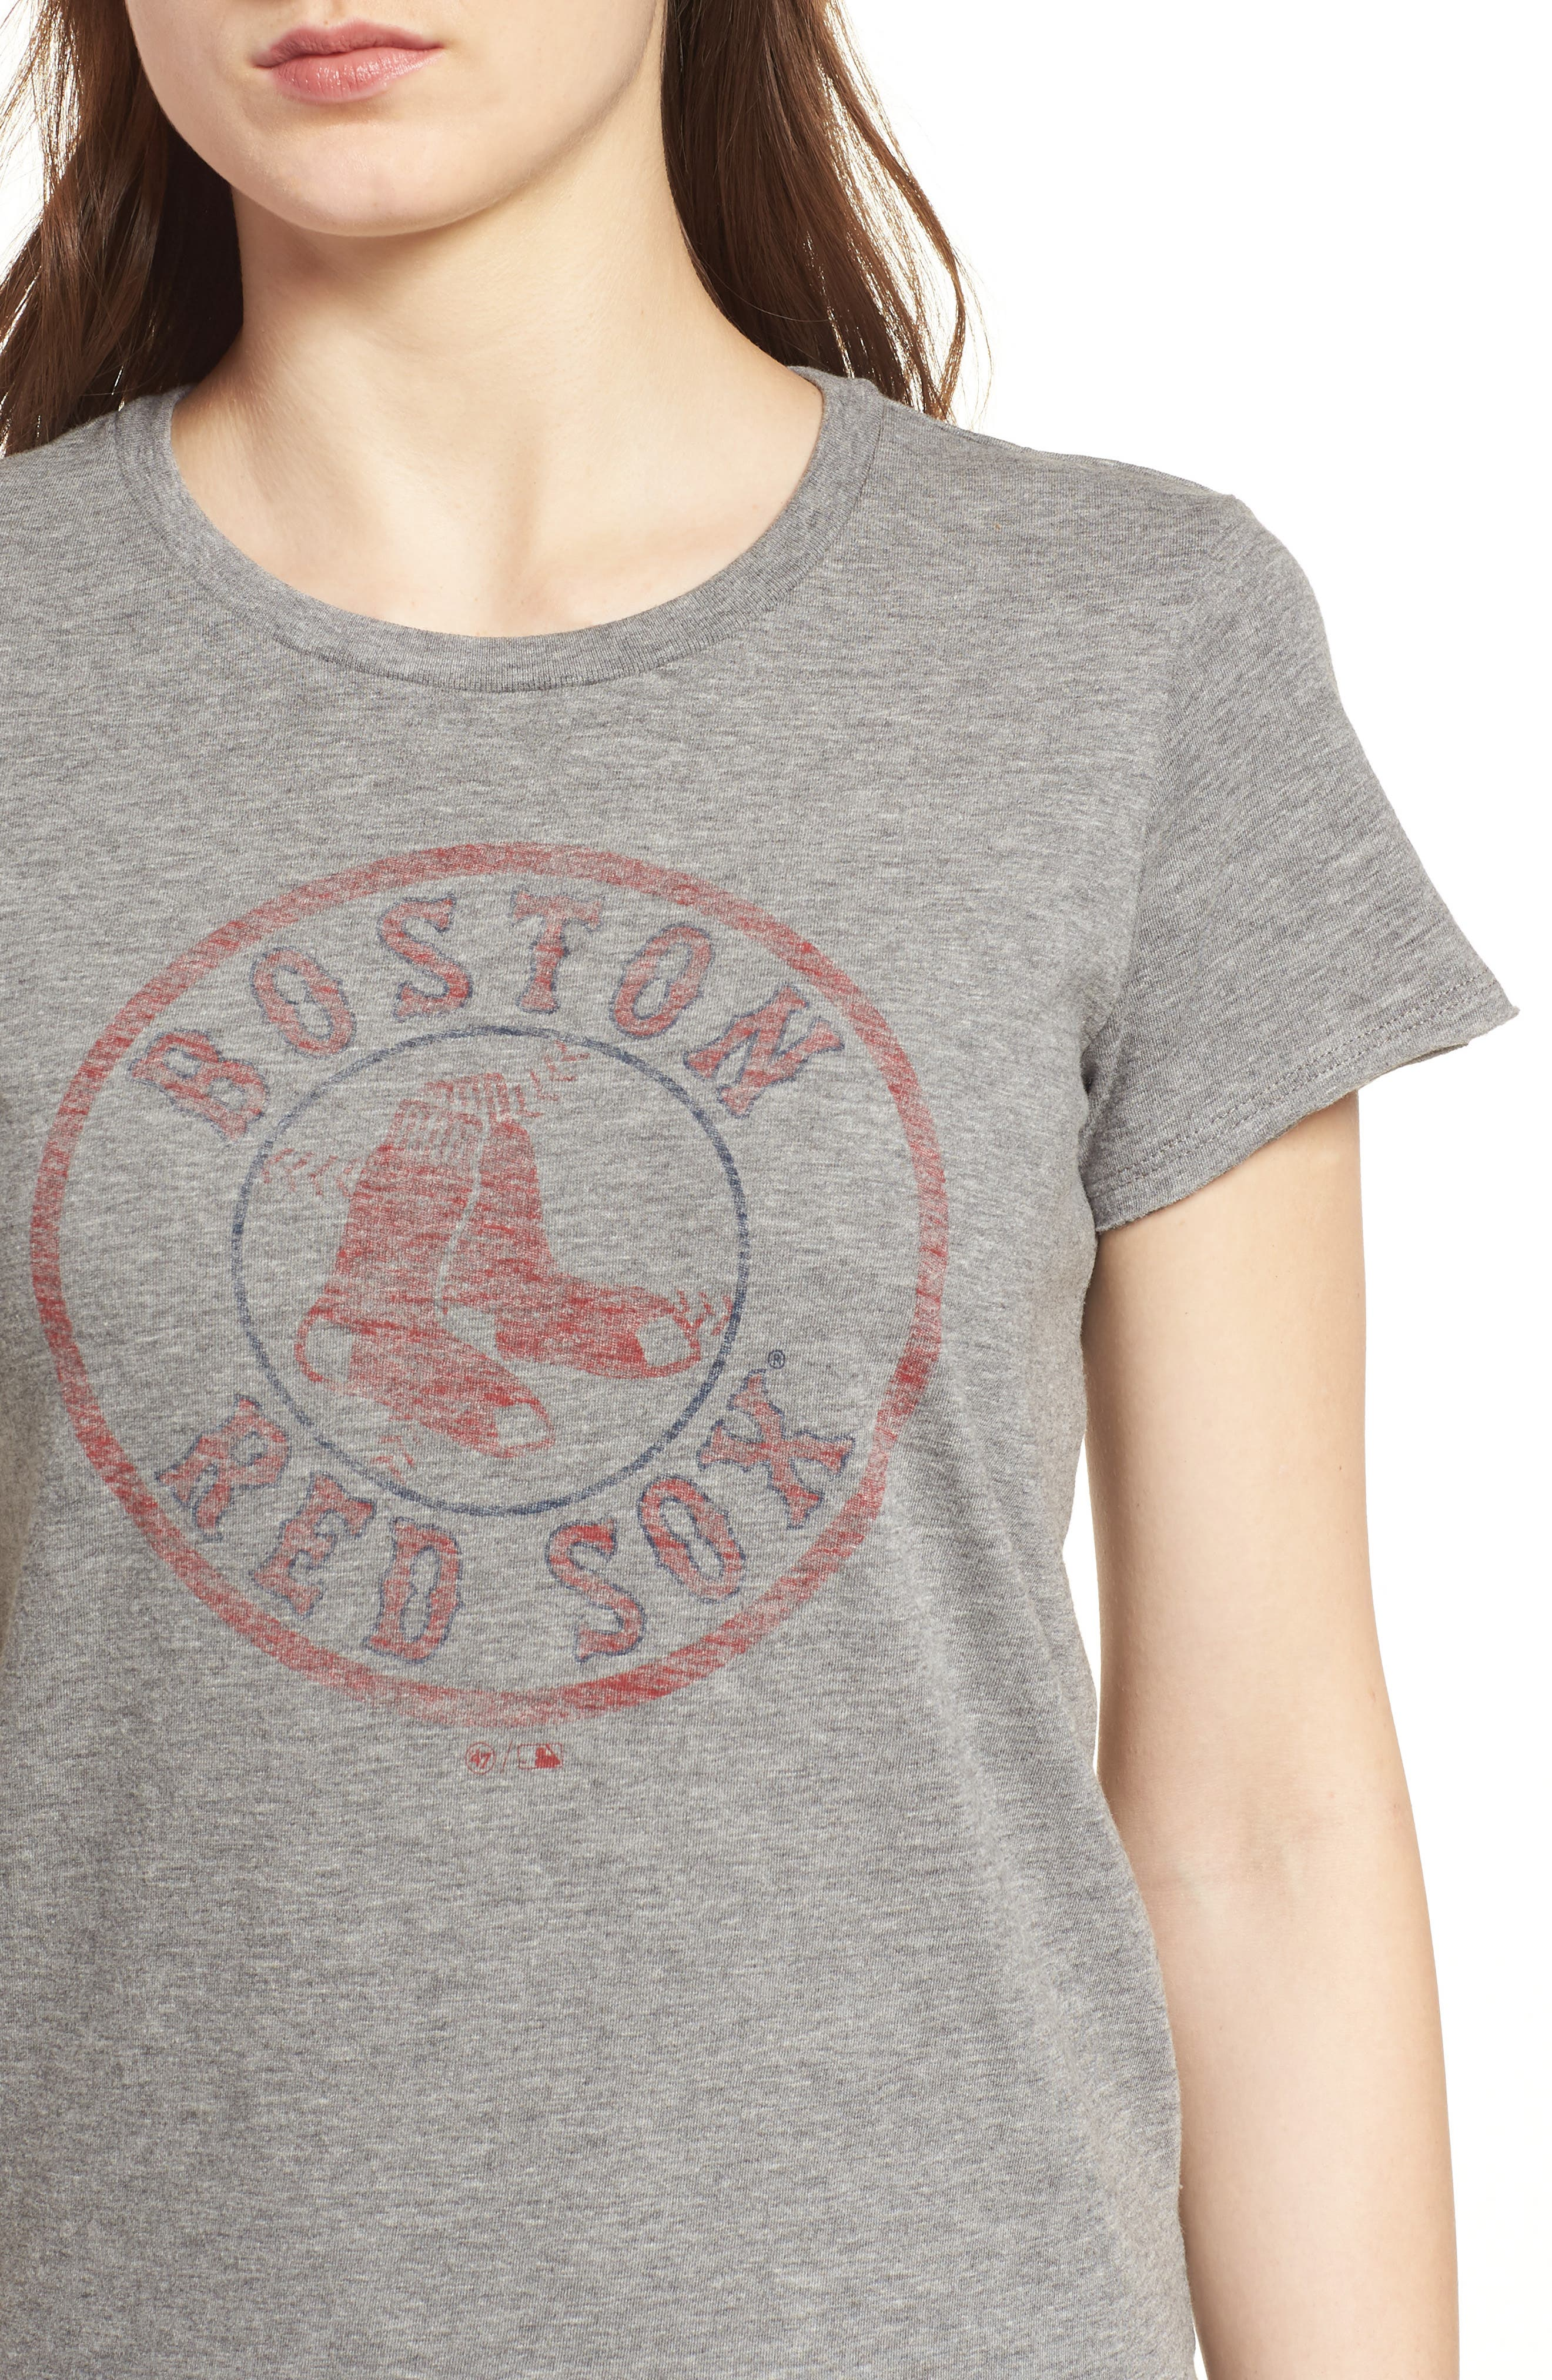 Boston Red Sox Fader Letter Tee,                             Alternate thumbnail 4, color,                             Slate Grey